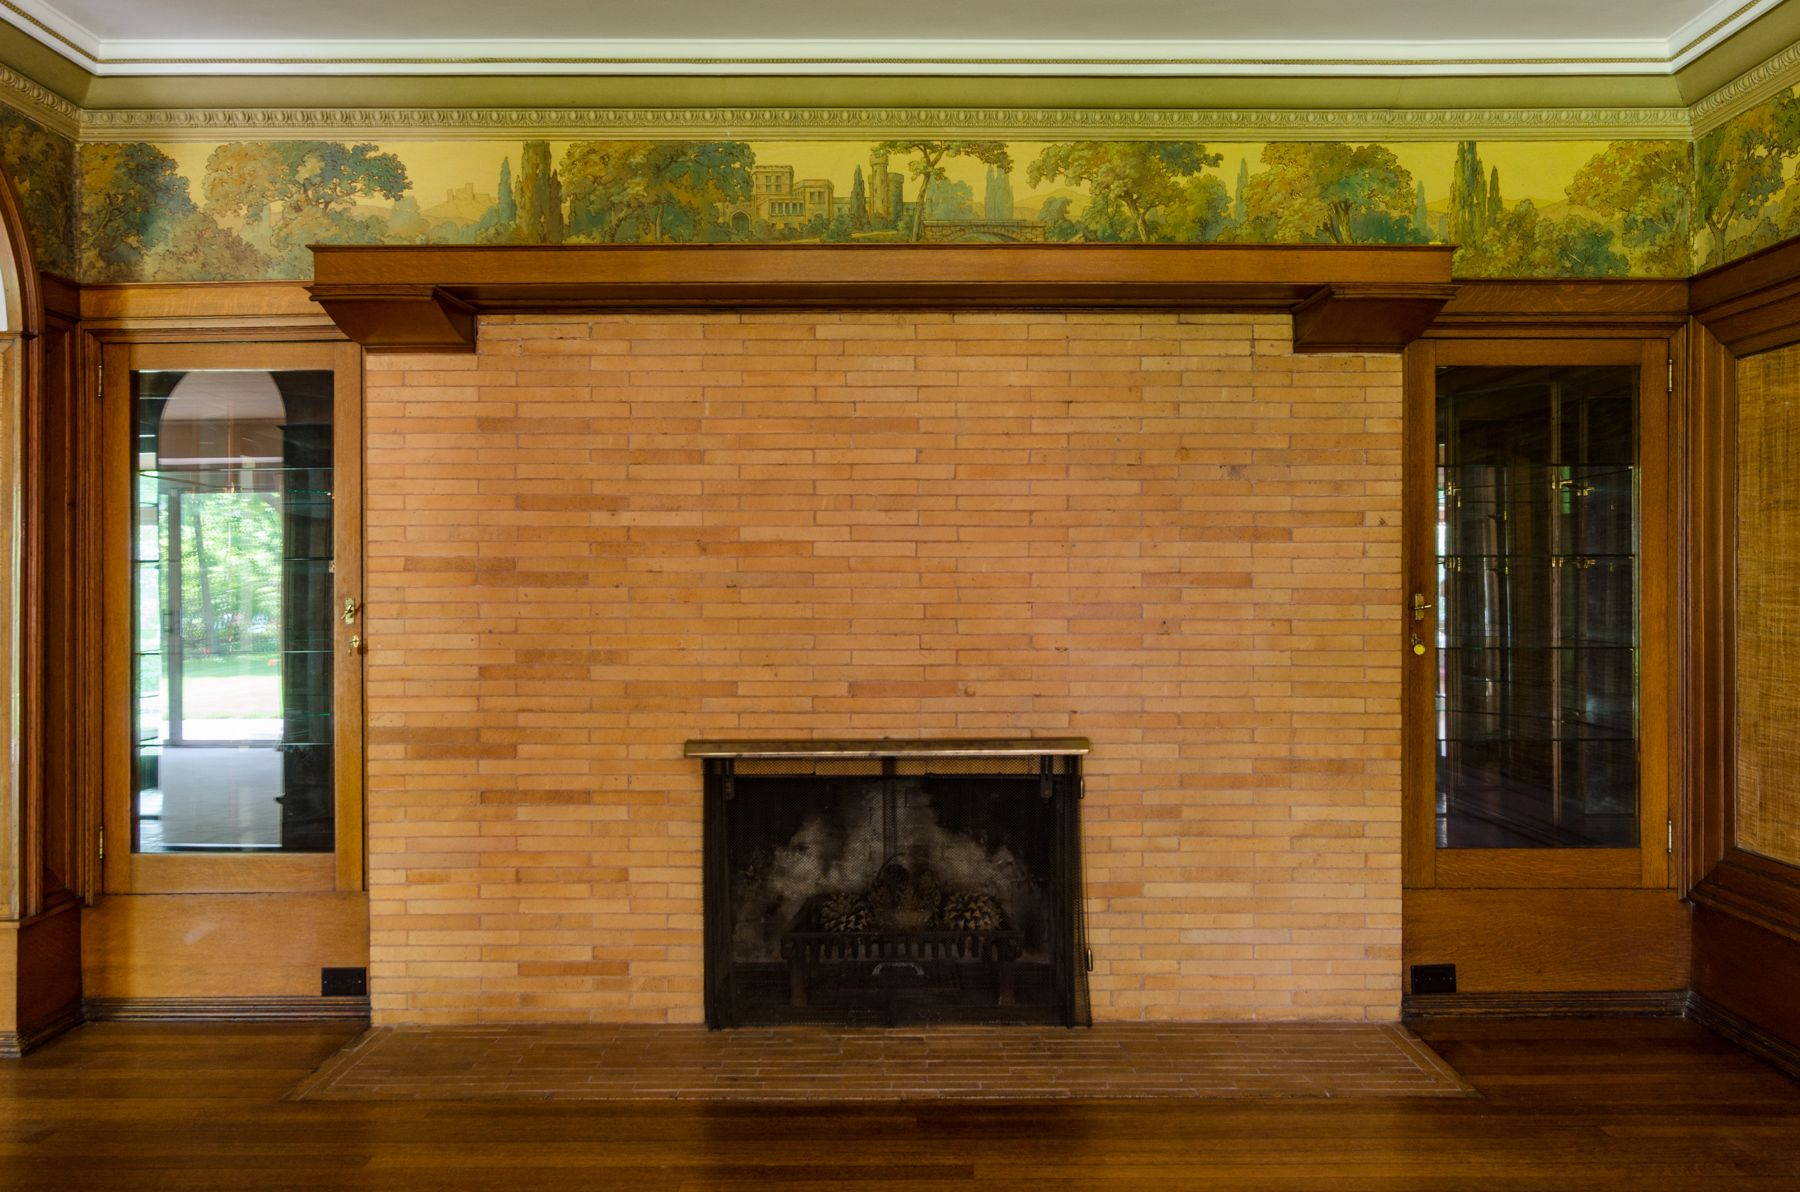 How Louis Sullivan S Organic Architecture Inspired Frank Lloyd Wright S Prairie School Louis Sullivan Organic Architecture Architecture